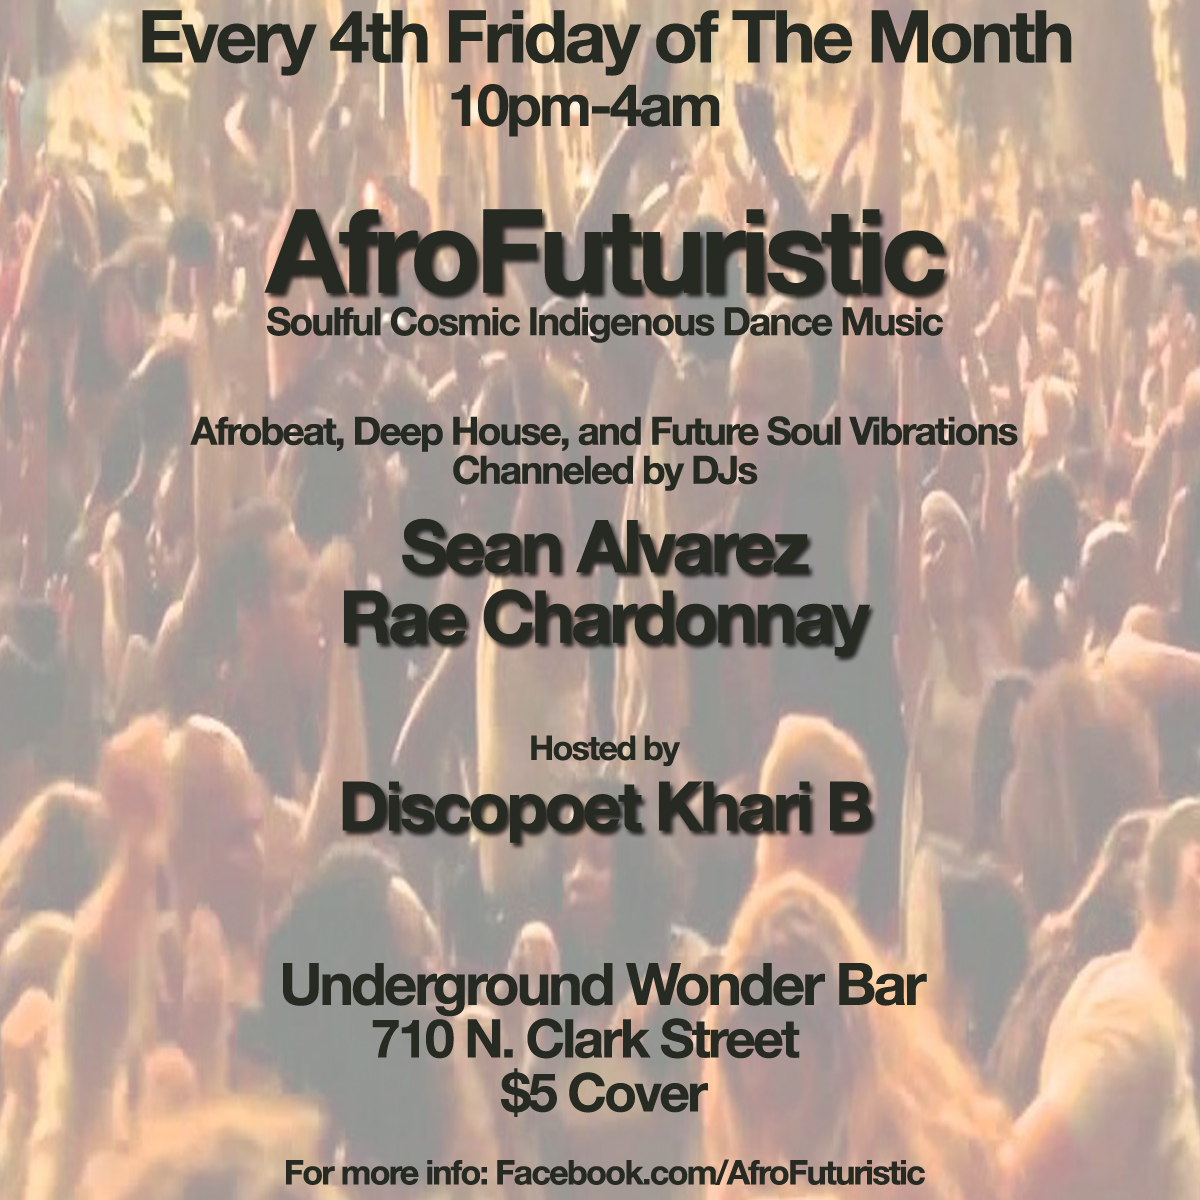 Friday May 27th: AfroFuturistic